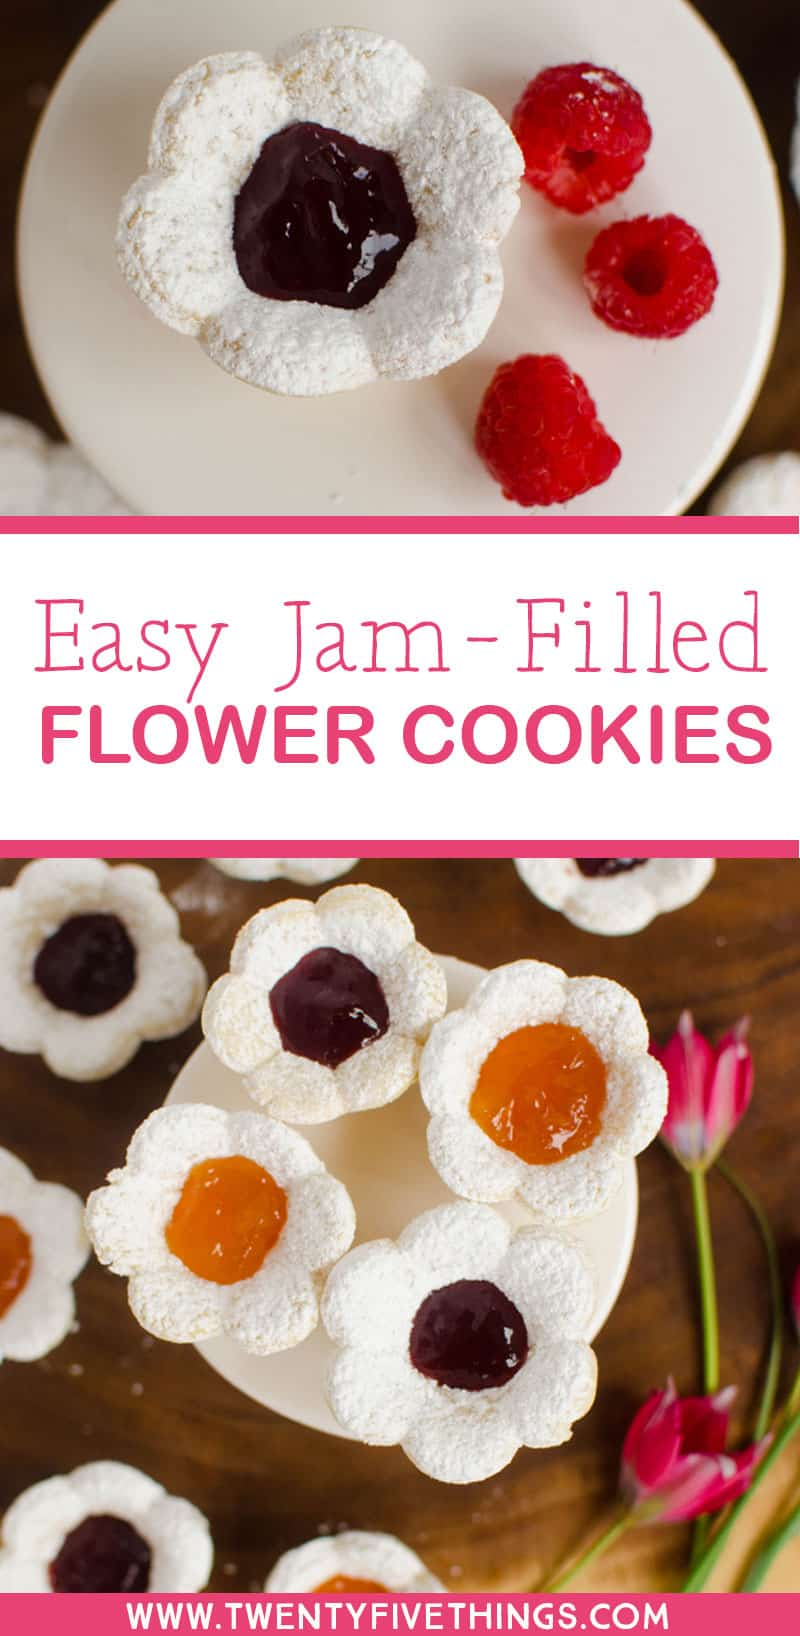 See how easy it is to make these jam-filled flower sugar cookies. These cookies are so cute for a tea party or brunch.